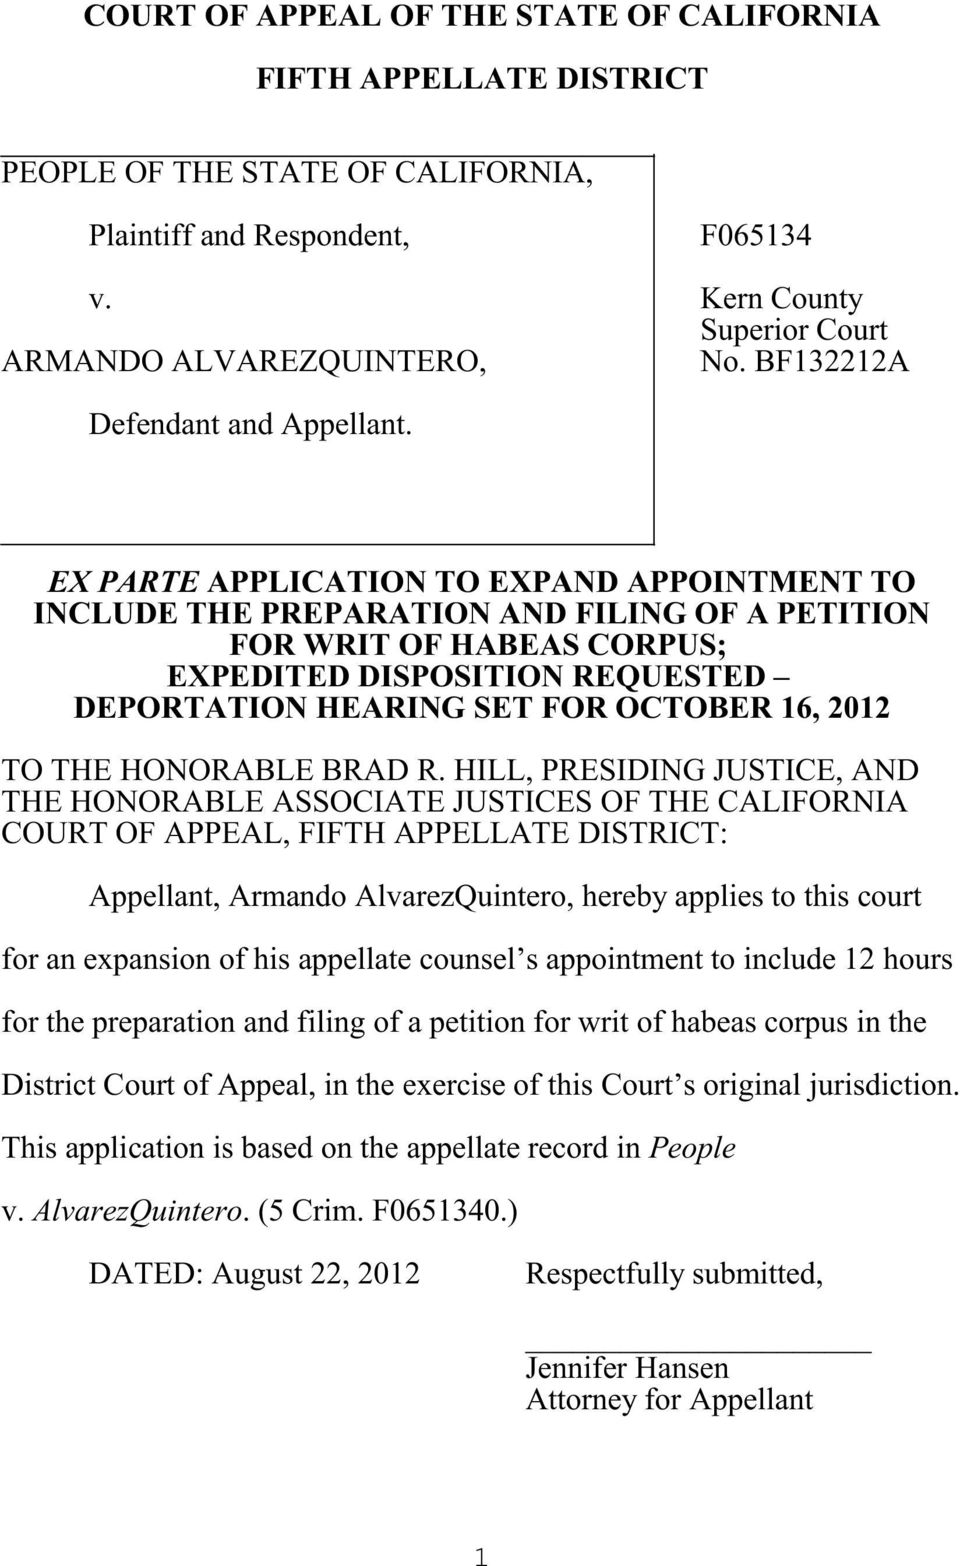 EX PARTE APPLICATION TO EXPAND APPOINTMENT TO INCLUDE THE PREPARATION AND FILING OF A PETITION FOR WRIT OF HABEAS CORPUS; EXPEDITED DISPOSITION REQUESTED DEPORTATION HEARING SET FOR OCTOBER 16, 2012